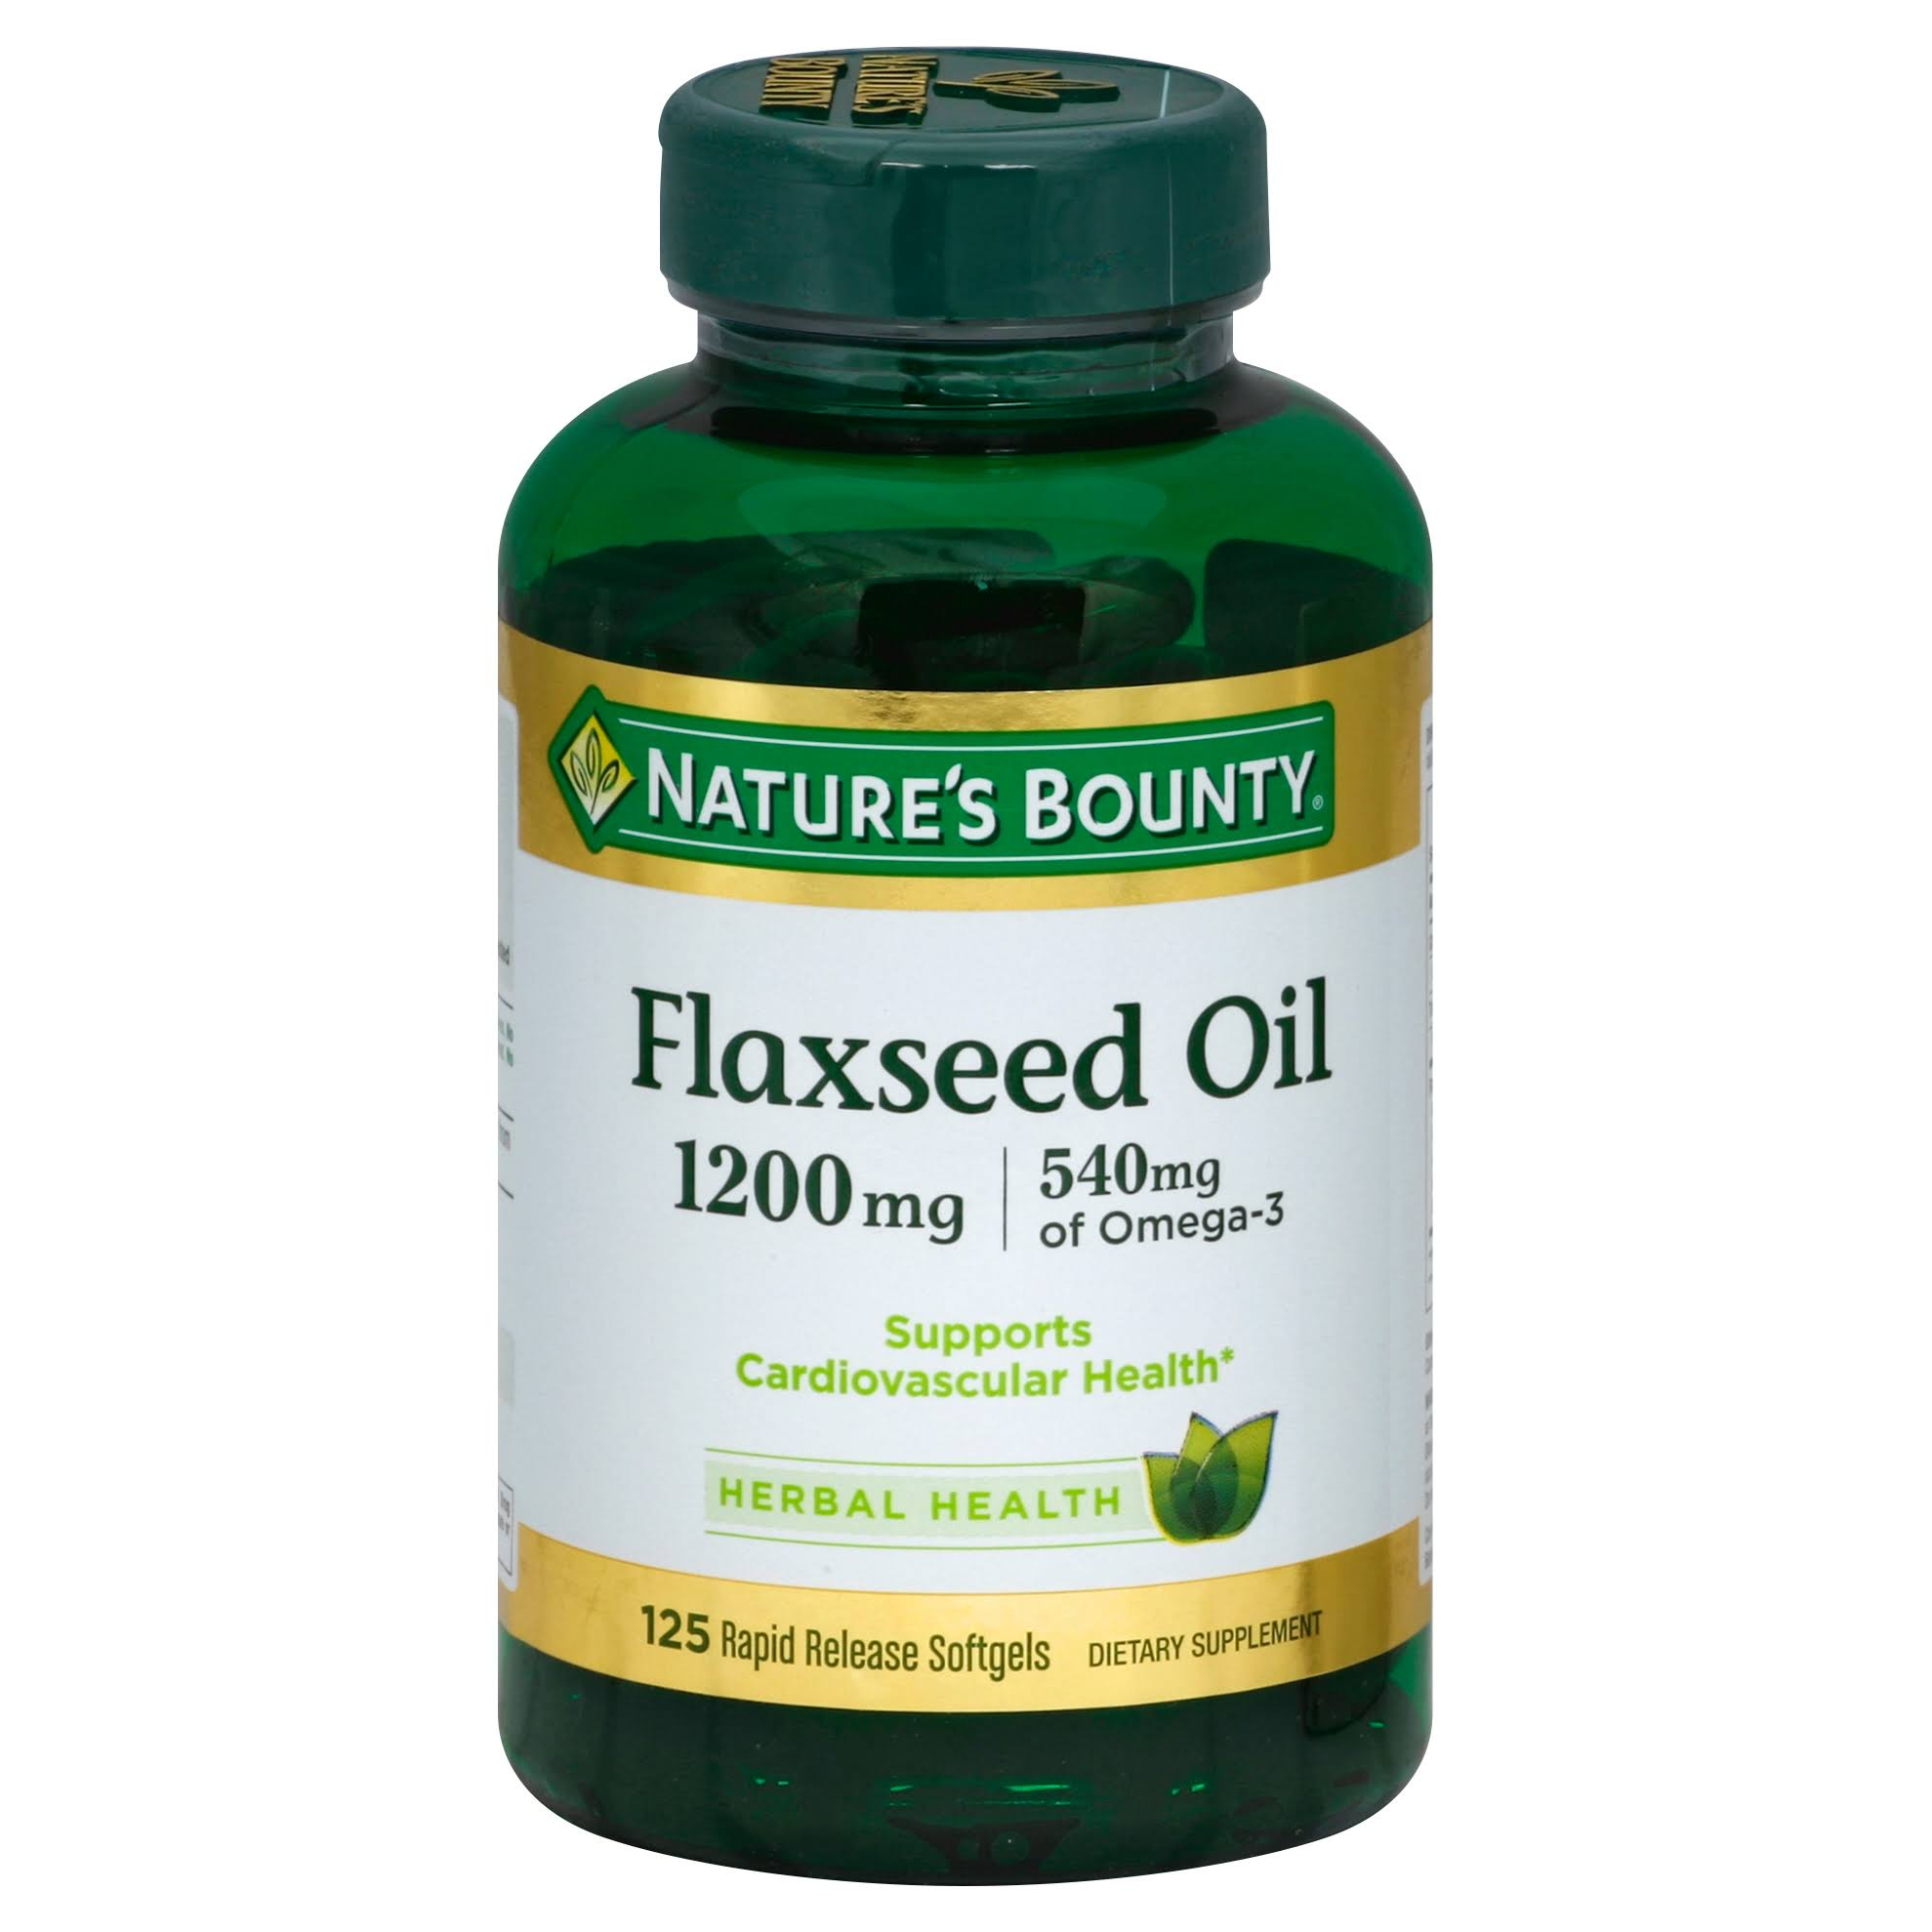 Nature's Bounty Flaxseed Oil Supplement - 1200mg, 125 Softgels